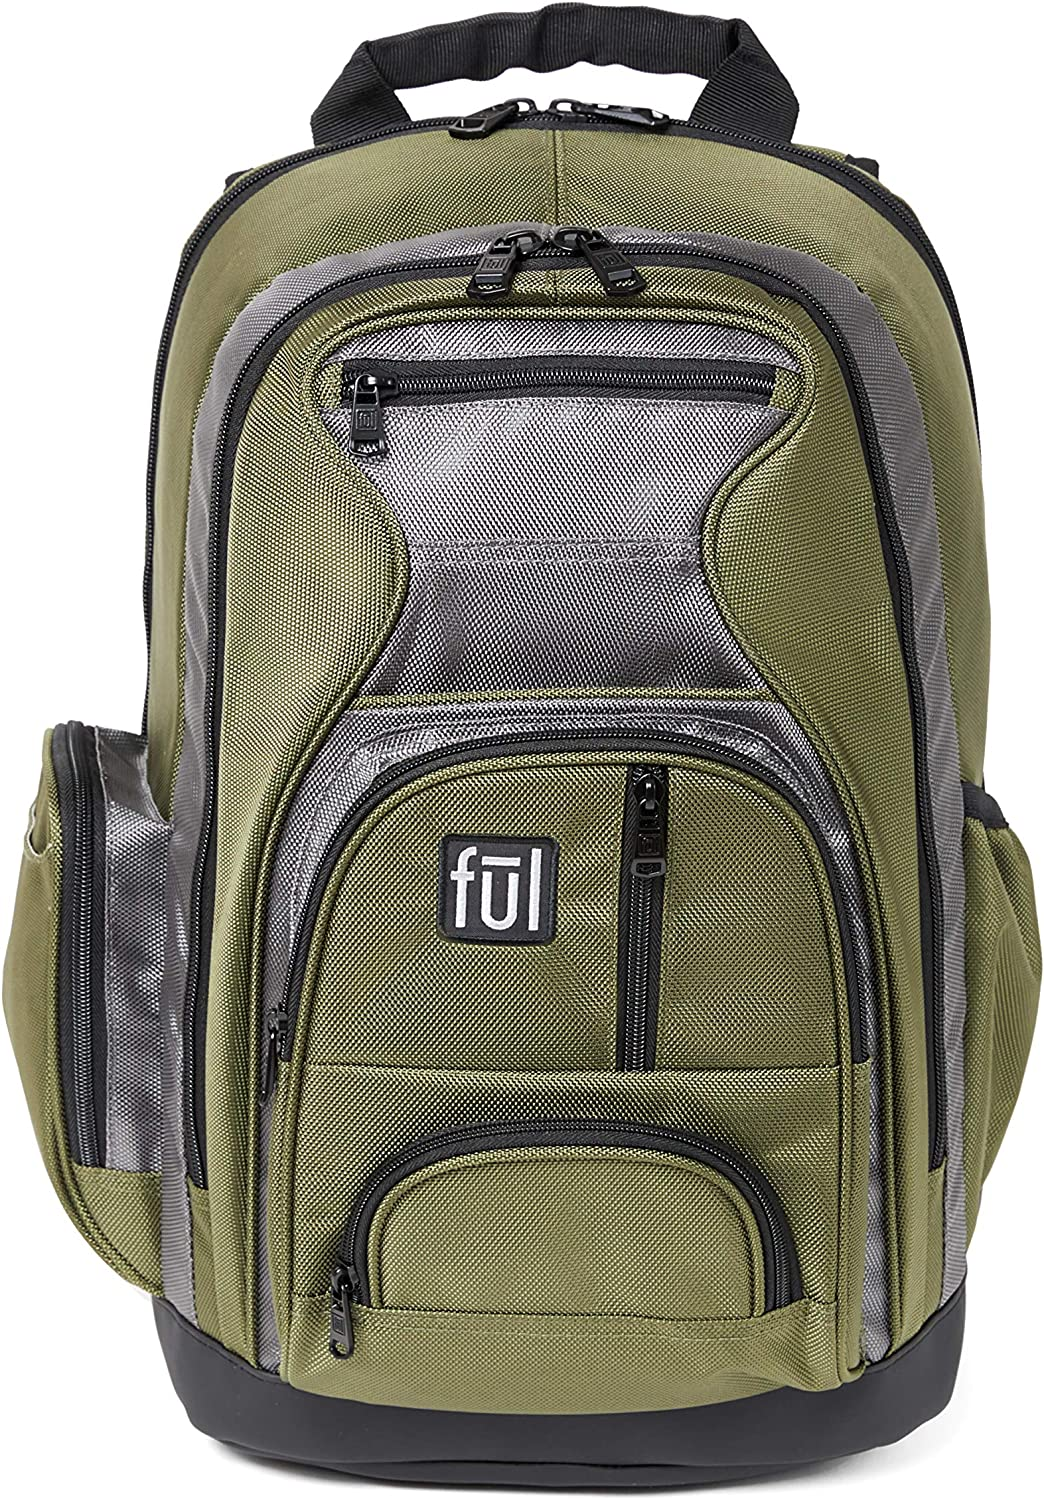 Ful Free Fallin' Padded Laptop Backpack, Fits Up to 17-Inch Laptops, Green, Unisex